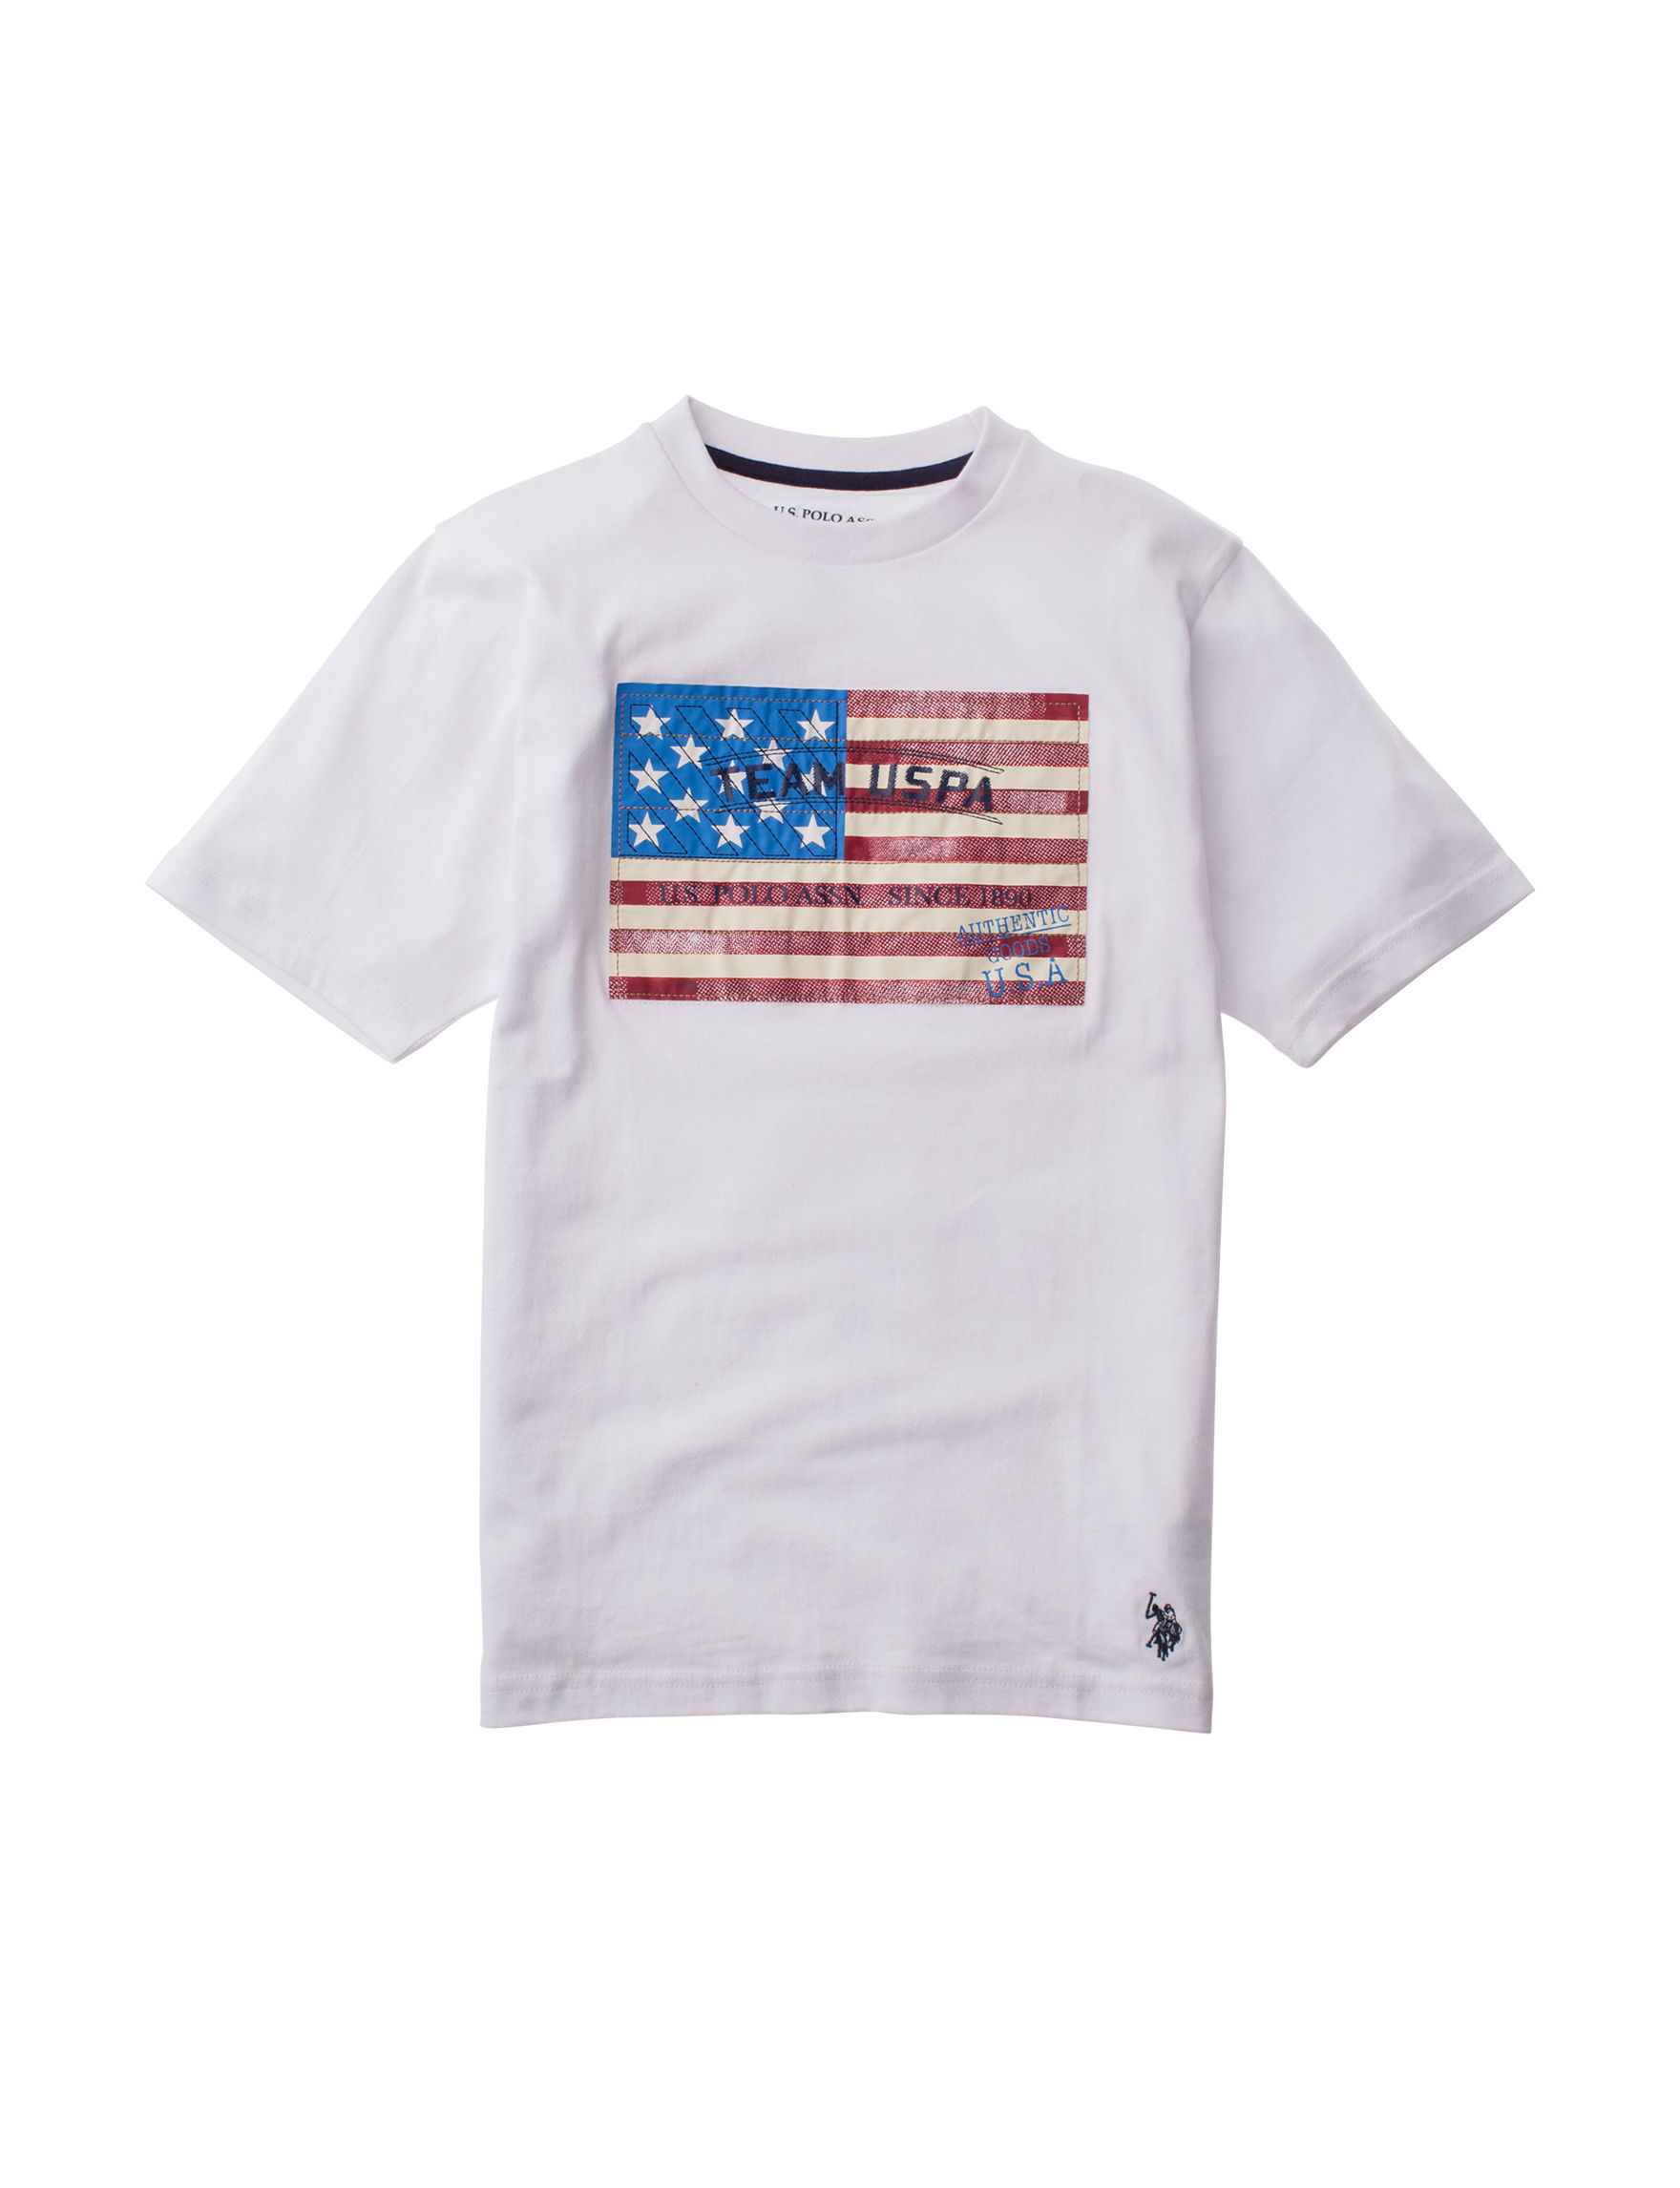 U.S. Polo Assn. White Tees & Tanks